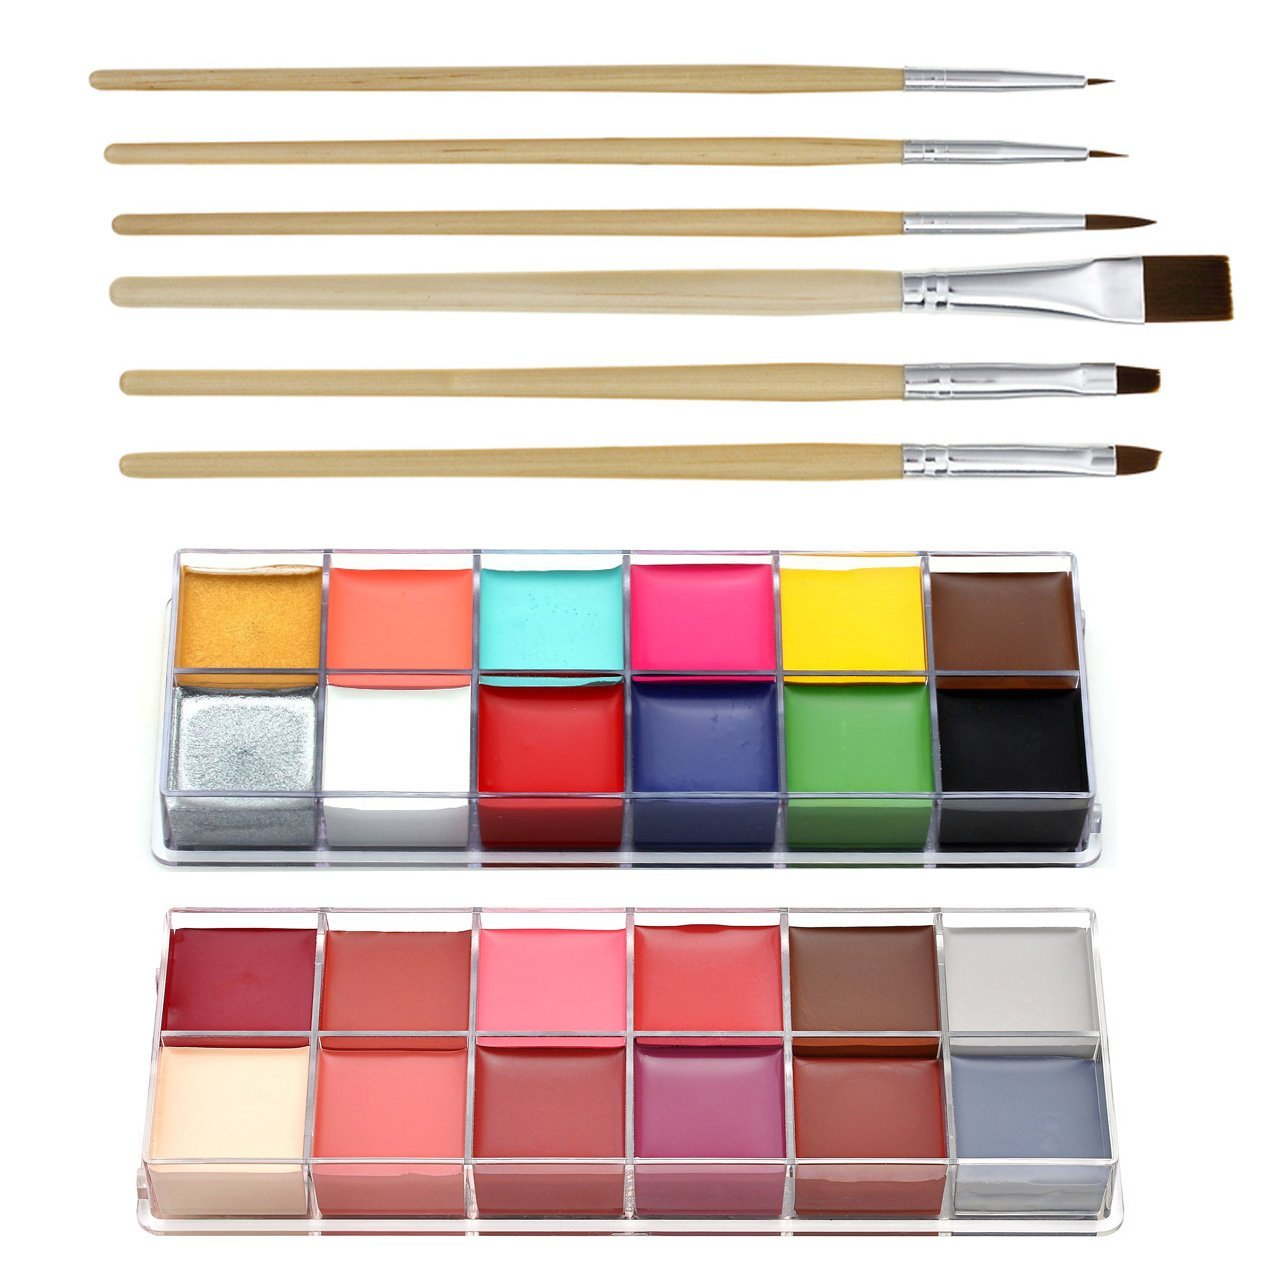 CCbeauty Professional Face Paint Oil 24 Colors Halloween Body Art Party Fancy Make Up with 6 Wooden Brushes by CCbeauty